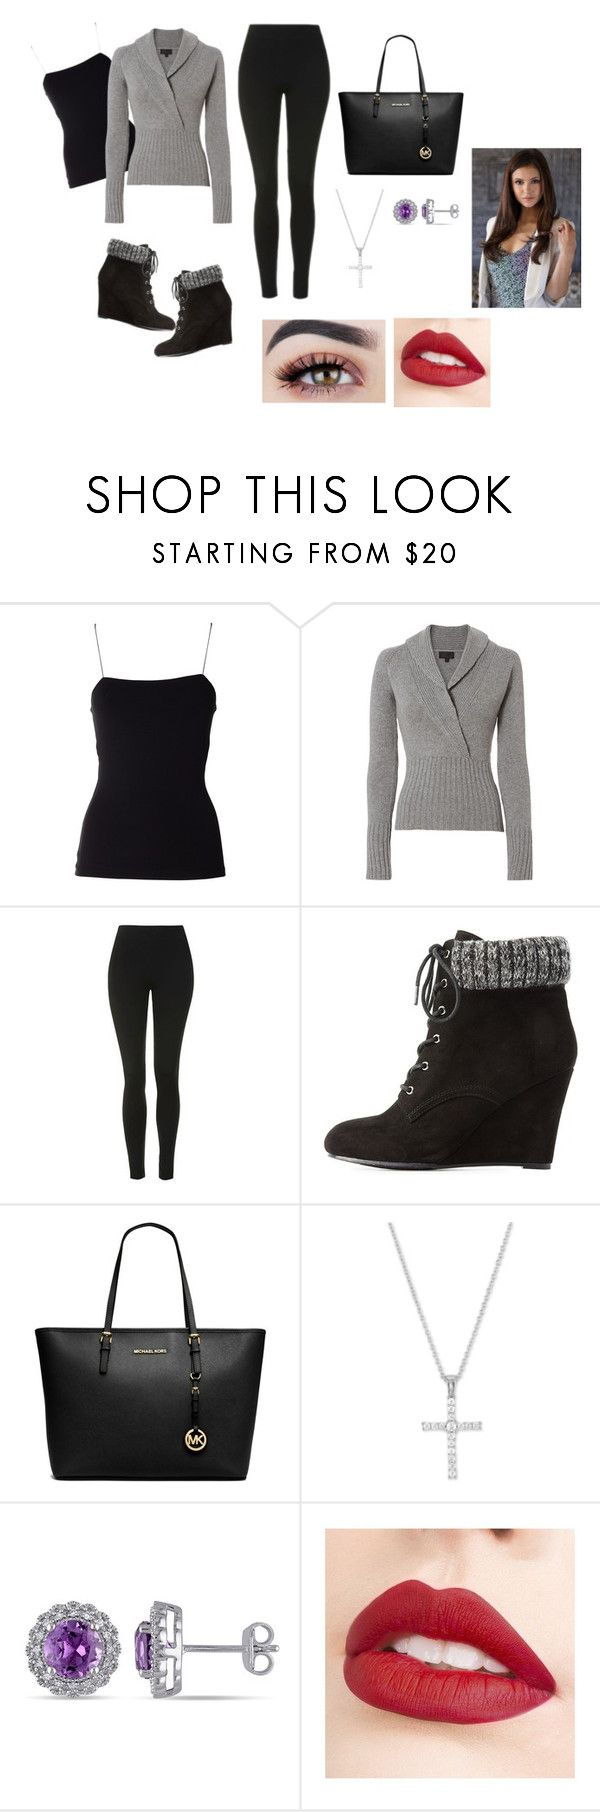 Cozy Outfit by fashion-lover2017 on Polyvore featuring Intermix, T By Alexander Wang, Topshop, Charlotte Russe, Michael Kors, Amour, La Preciosa and Jouer